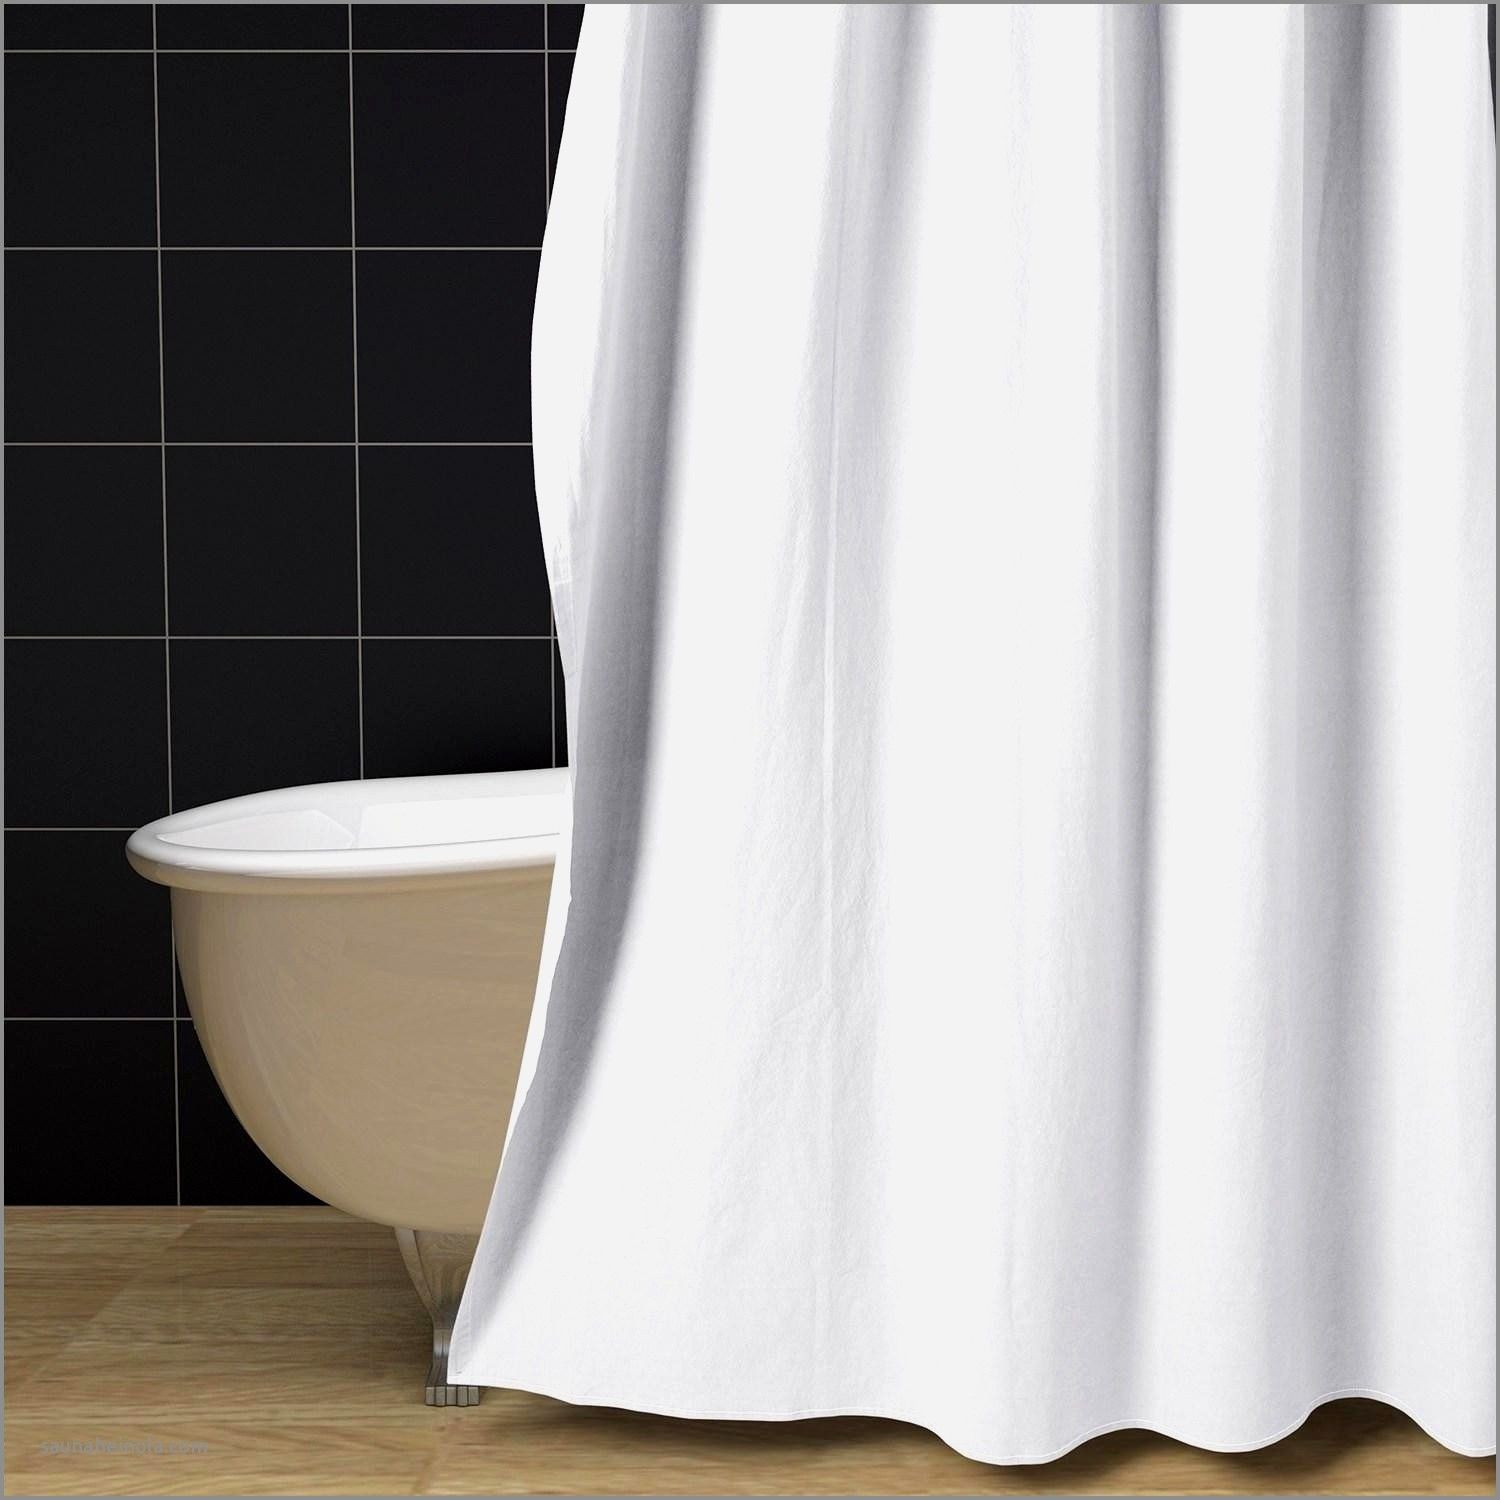 Pin by vps on furniture in pinterest shower curtain